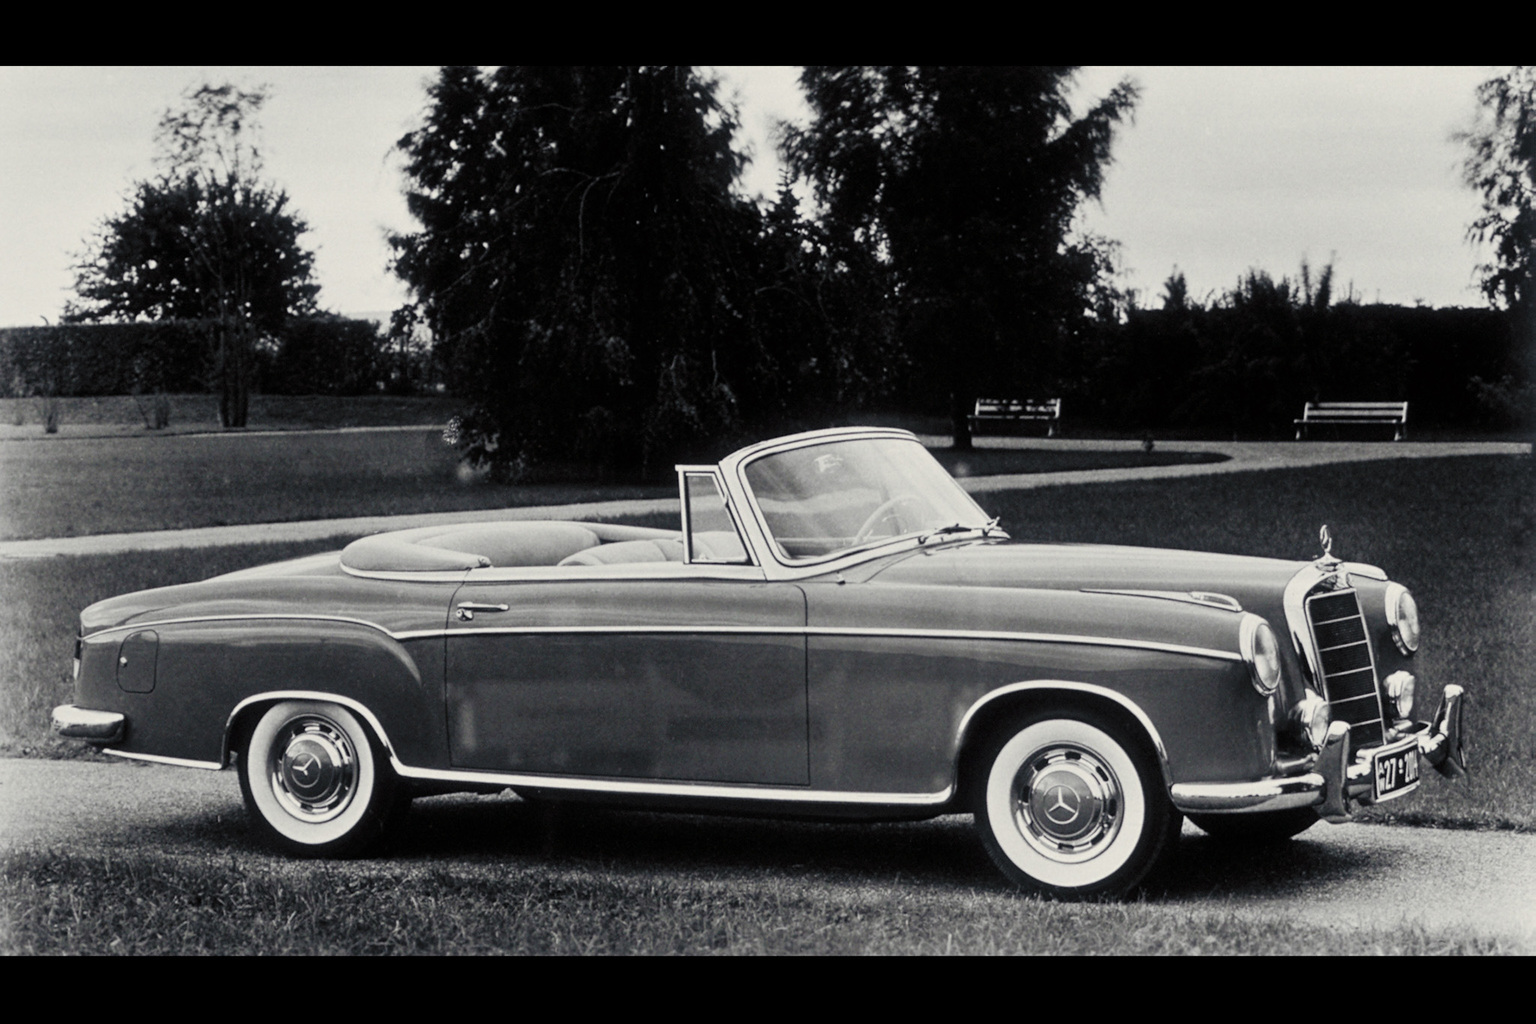 1958 1960 mercedes benz 220 se cabriolet review for Mercedes benz cars photos